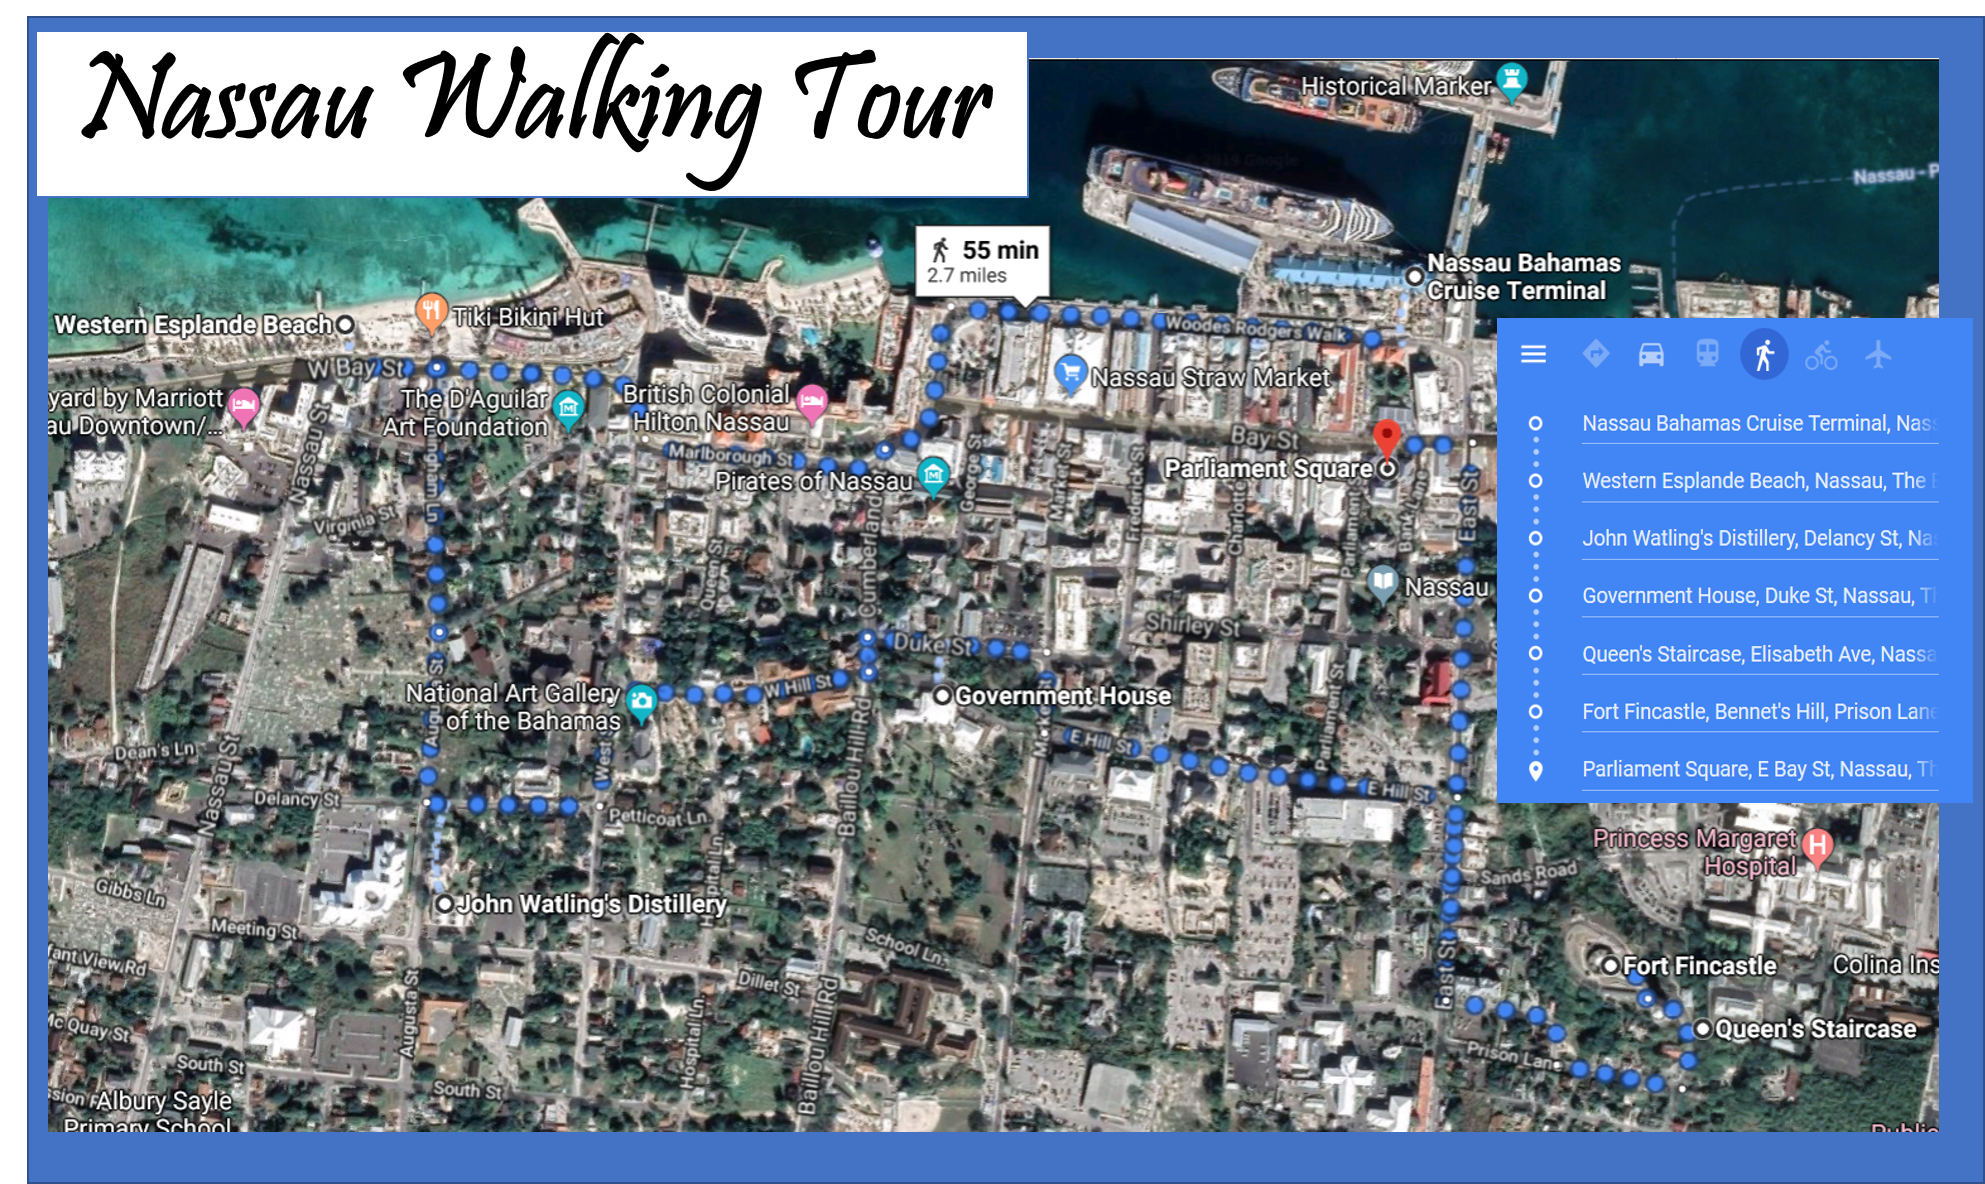 nassau walking tour2.png